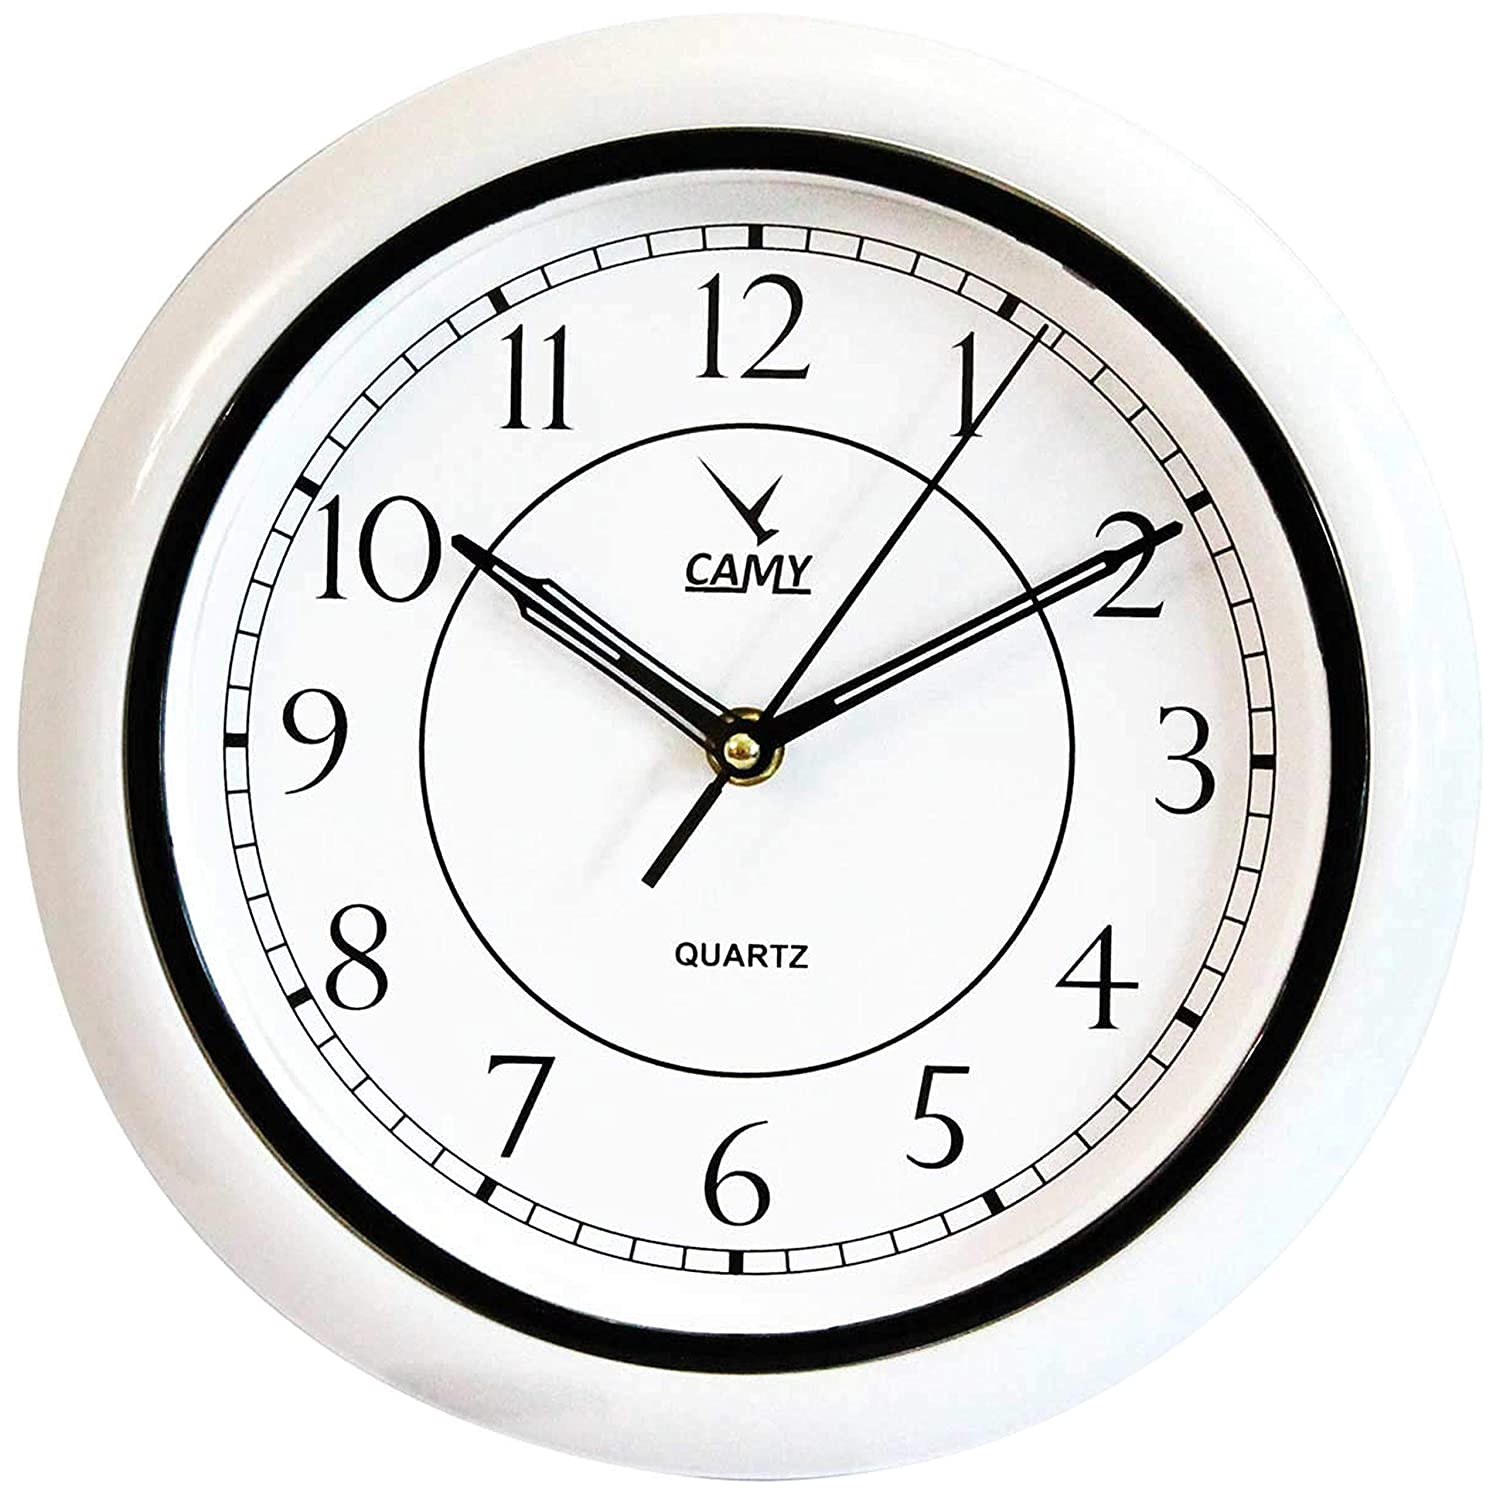 CAMY Wall Clock - Super Silent Non Ticking Sweeping Hands, 10 Inch Quality Quartz AA Battery Operated Round Easy to Read Wall Clock for Home/Office/Kitchen/Living Room/Classroom (Black, 10 INCH)